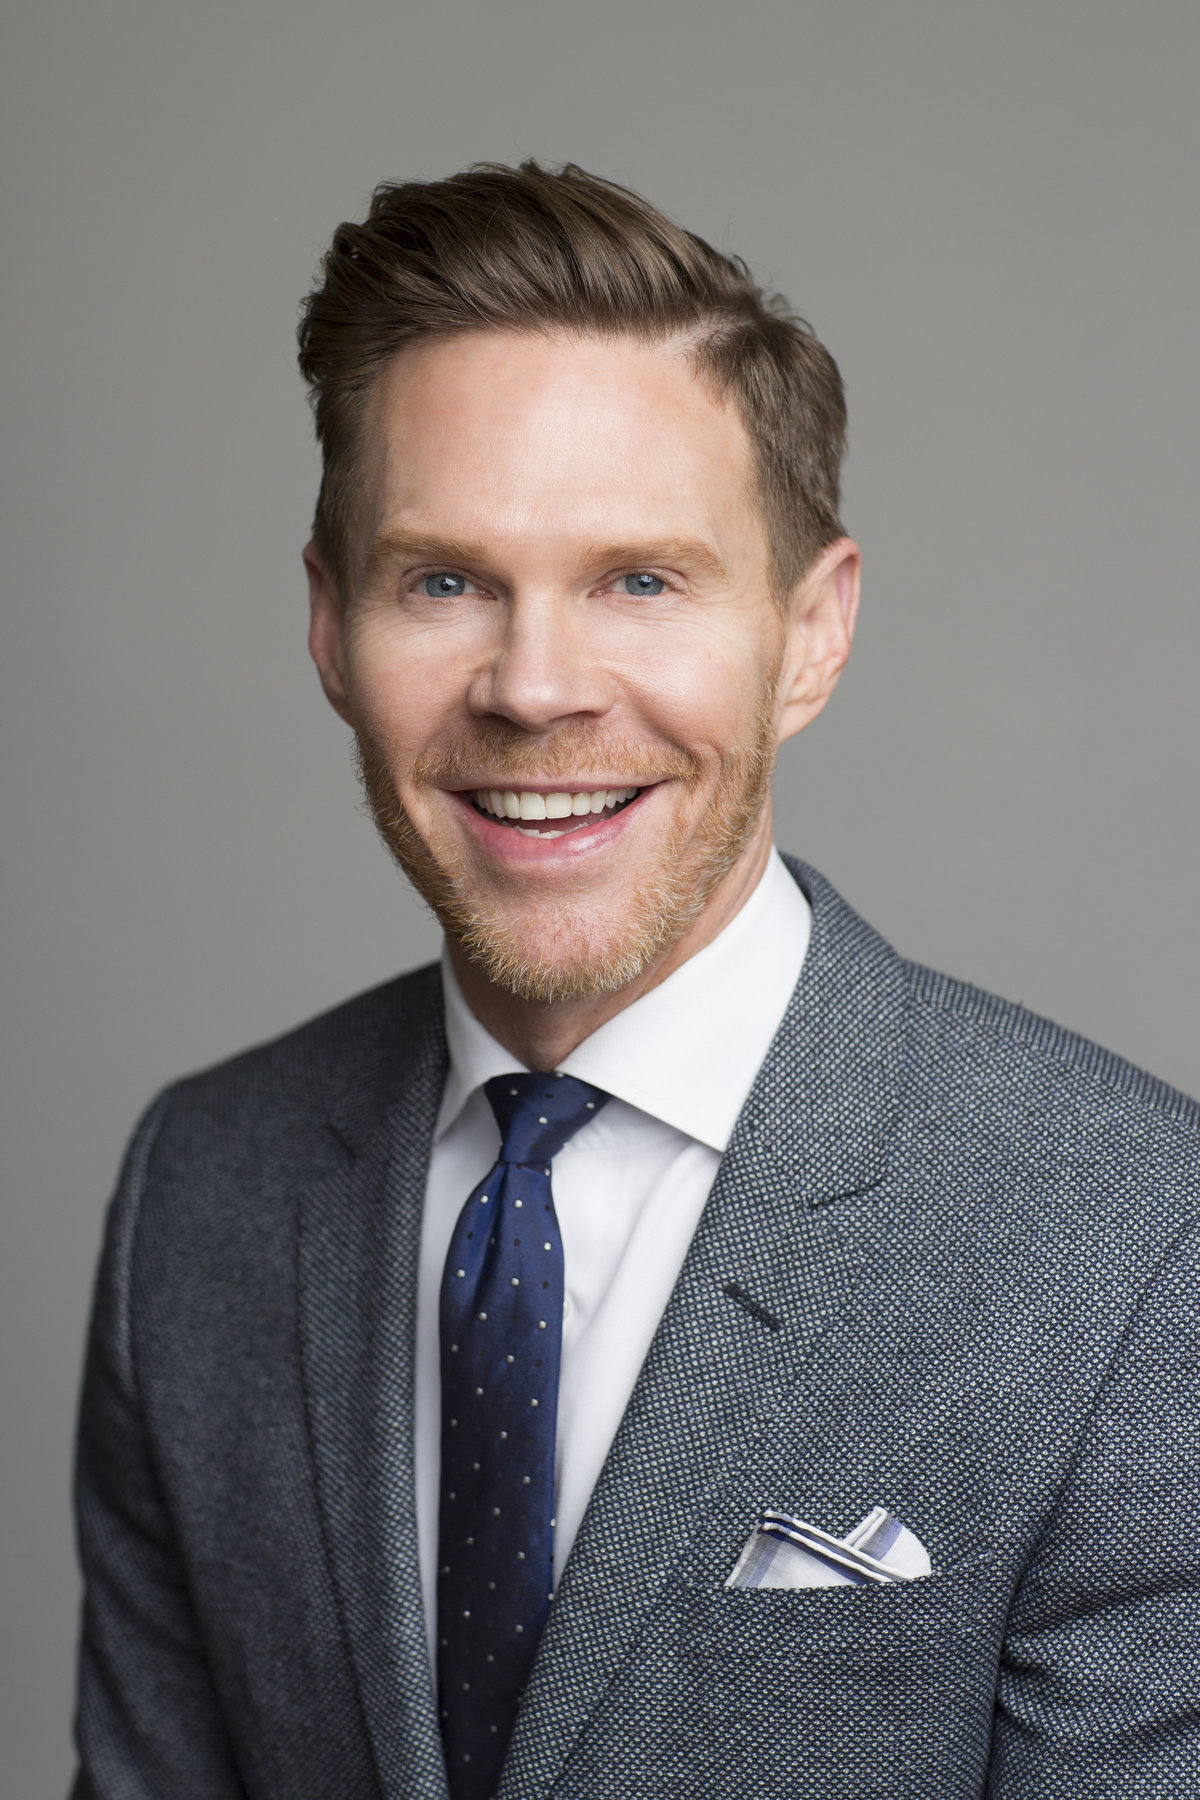 Nick Headshots-3 26 18 Nick Shoot-0007